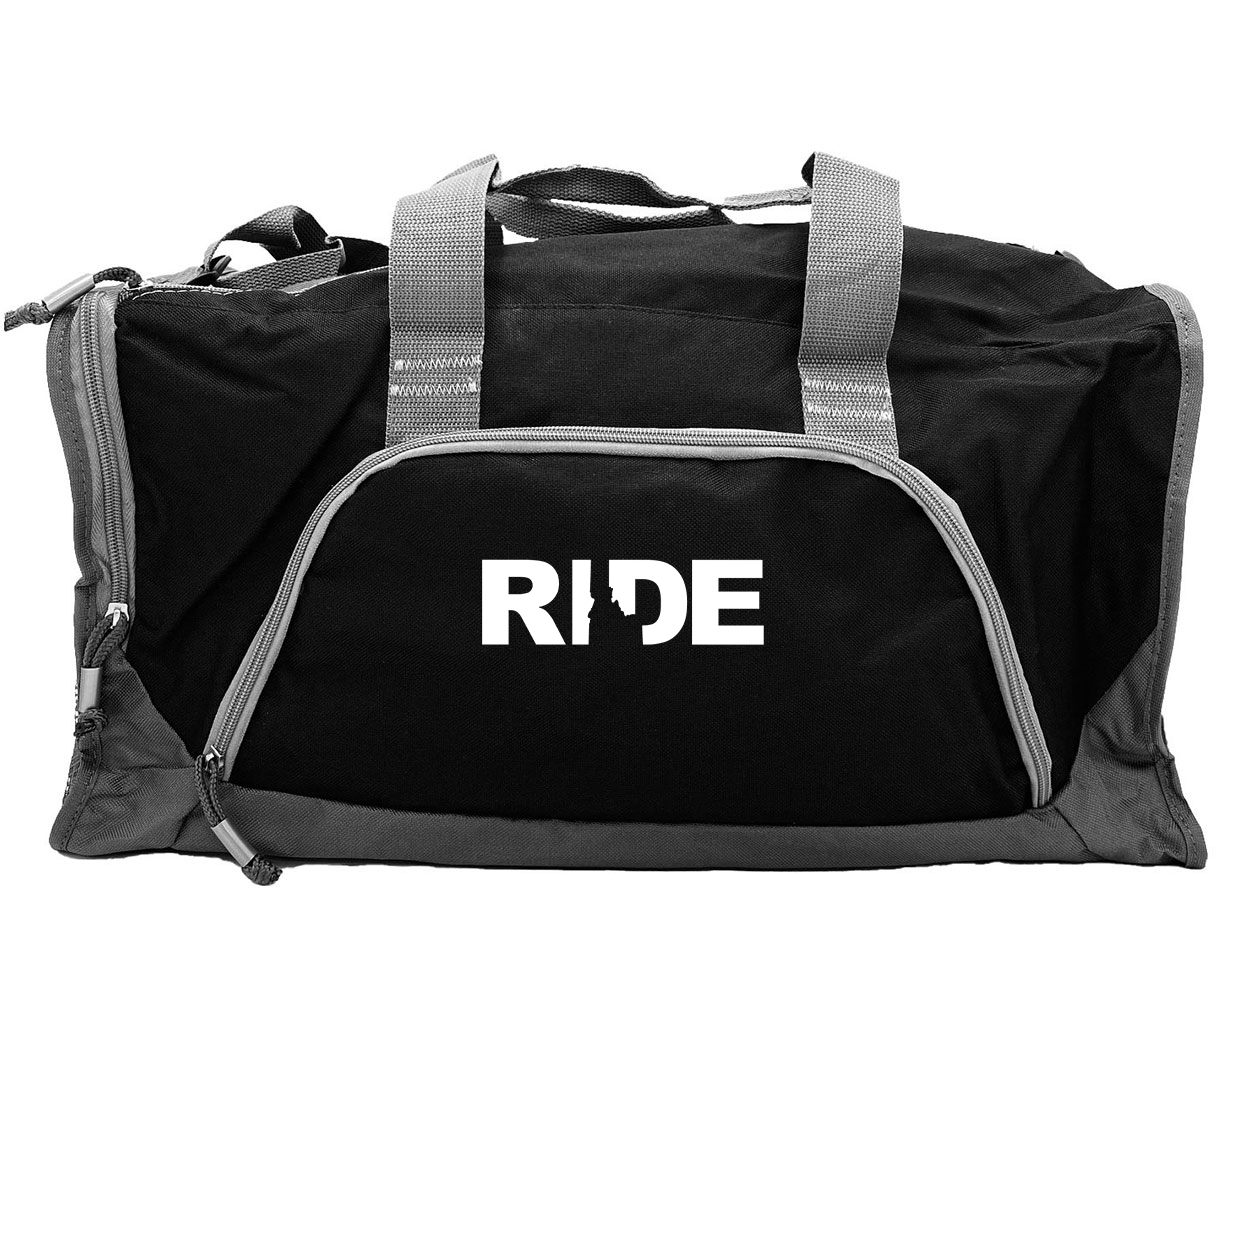 Ride Idaho Classic Rangeley Sport Duffel Bag Black (White Logo)